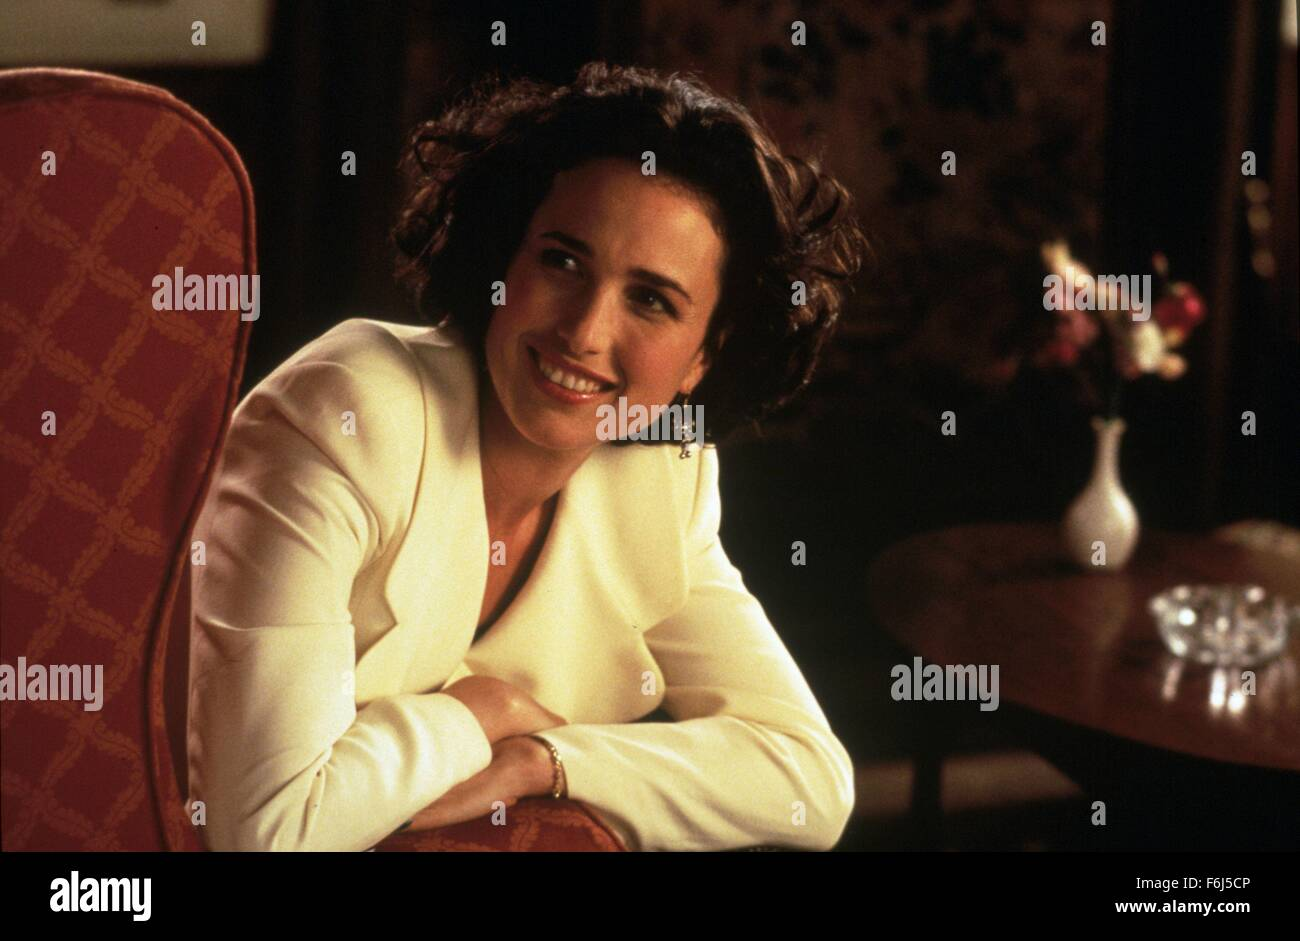 1994 Film Title Four Weddings And A Funeral Director Mike Newell